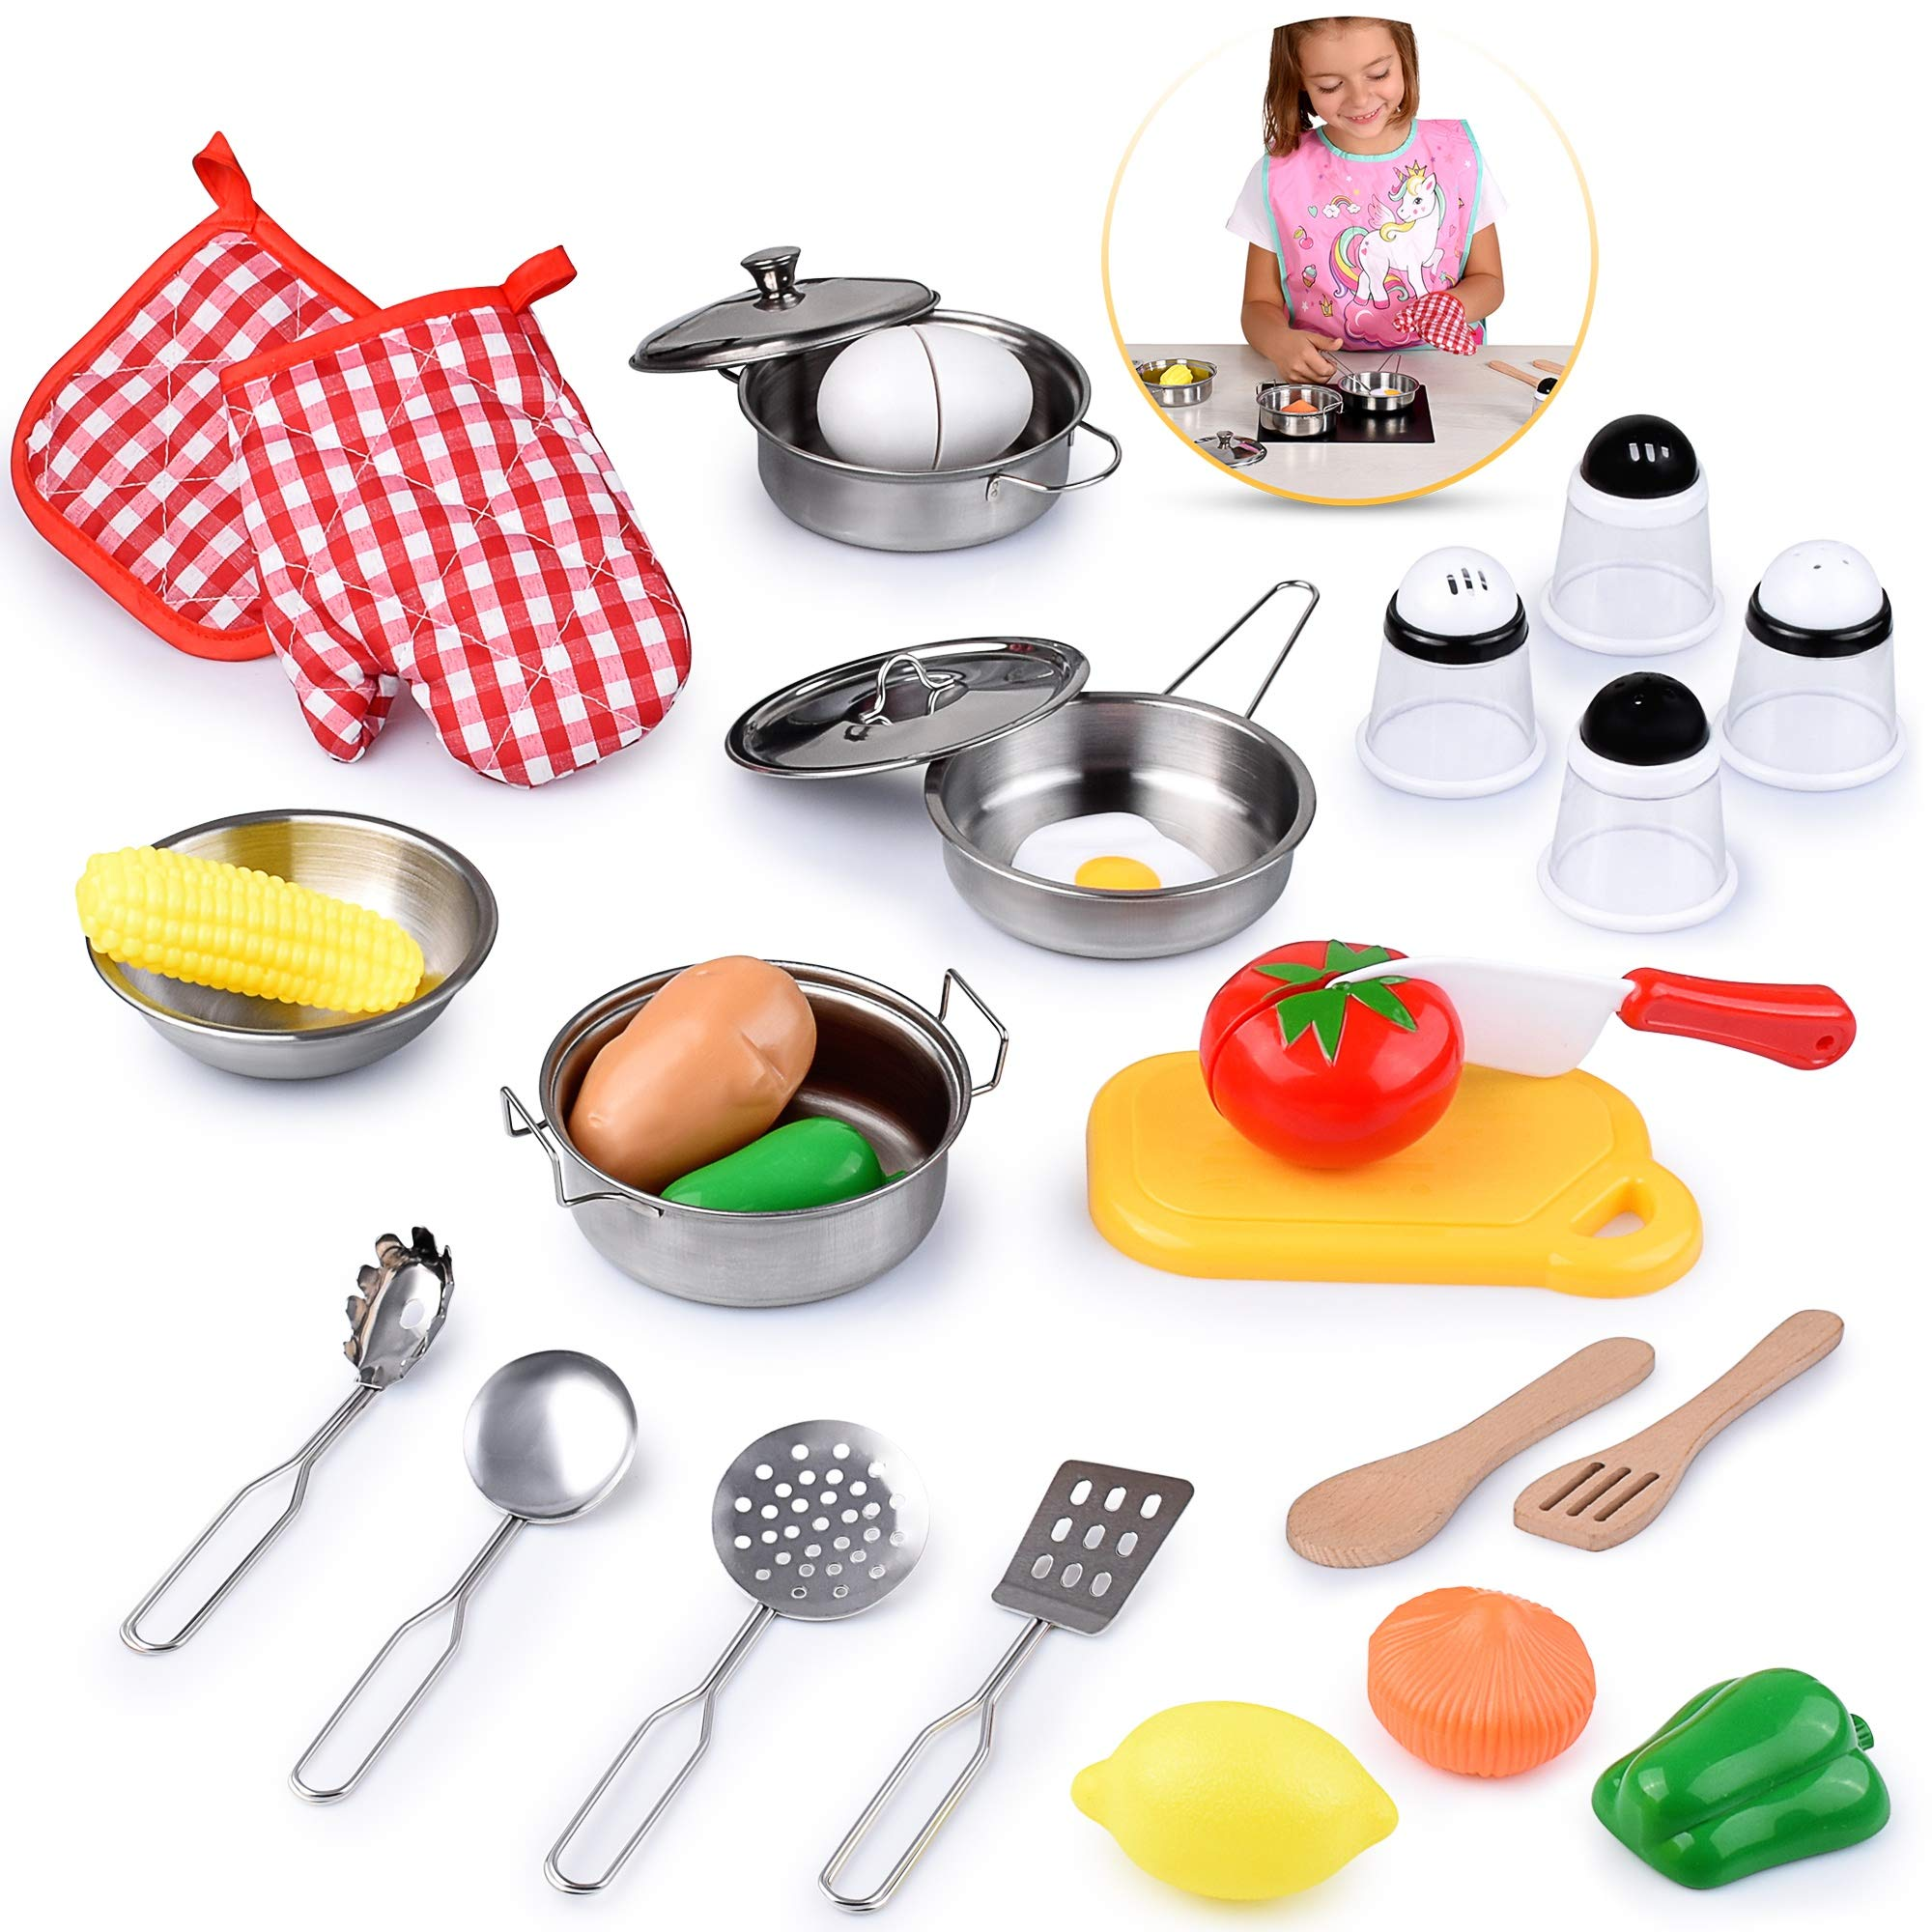 Kids Kitchen Toy Playset, Educational Kitchen set Accessories for Girls and Boys, Pretend Play Cooking Toys for Toddlers, with Stainless Steel Cookware Pots and Pans Set, Food and Vegitables